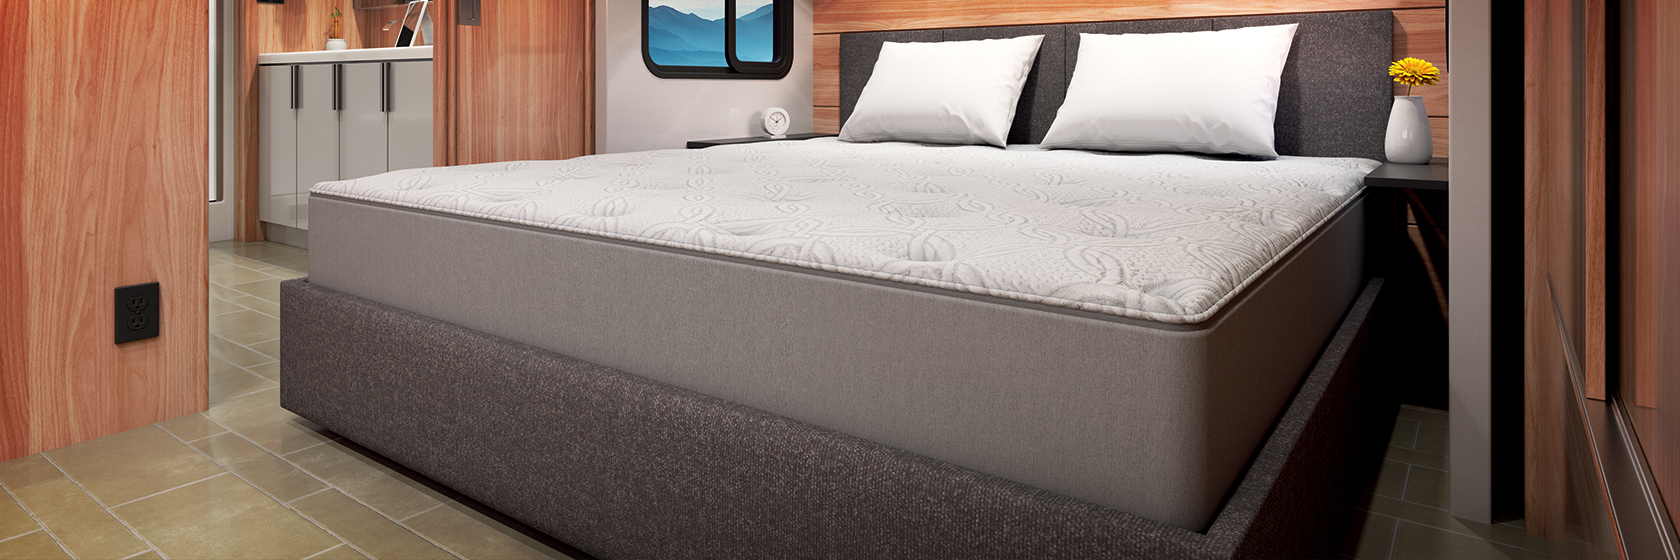 Sleep Better With Up To 300 Off Mattresses Toppers More